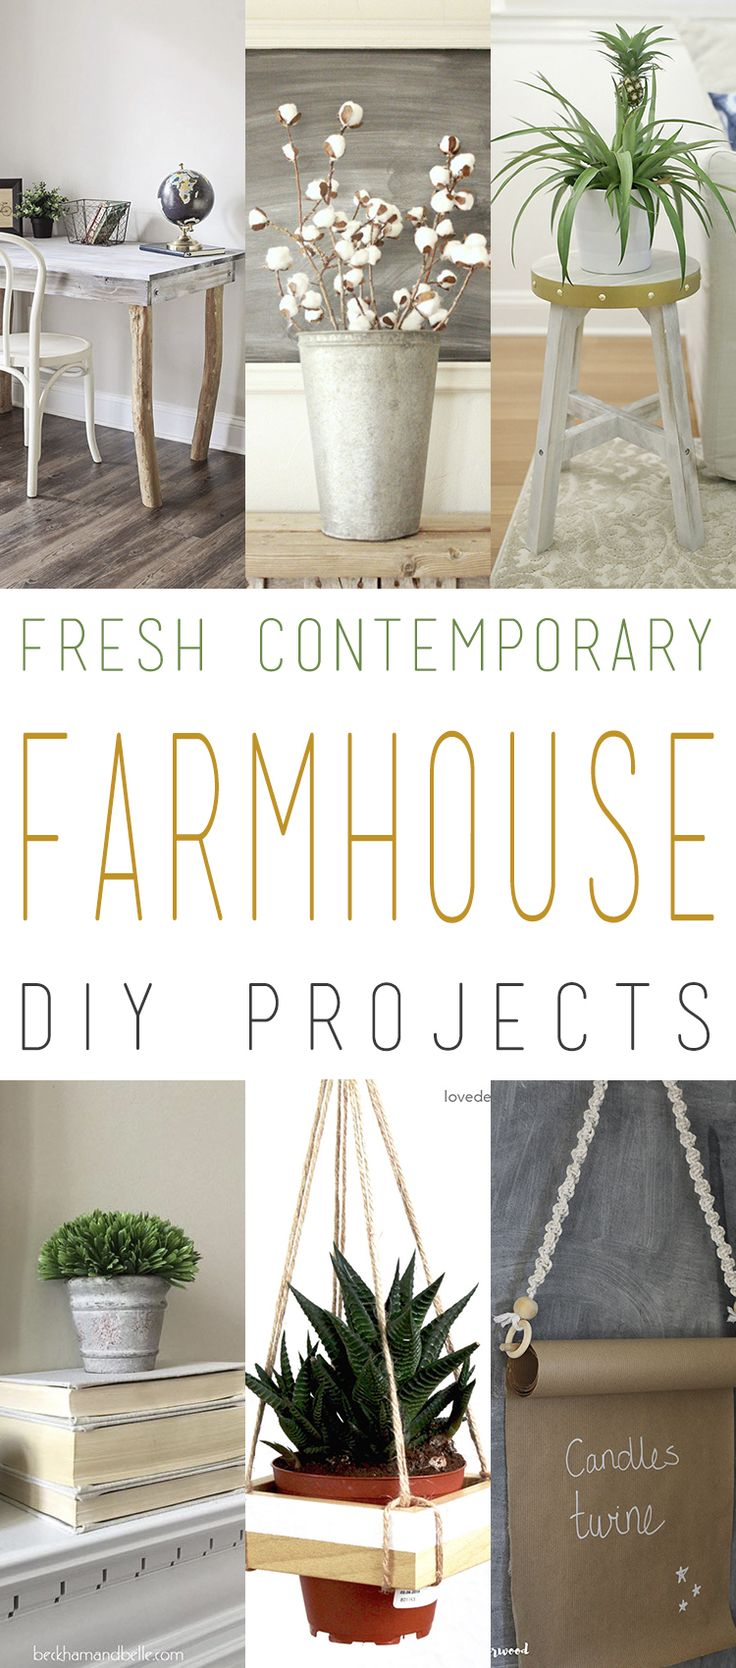 We do so many Farmhouse Collections but we wanted to mix it up a little bit and add some Fresh Contemporary Farmhouse DIY Project Today.  They will all look great in any home decor…but would SHINE in a Contemporary Farmhouse Setting.  So if you are looking for the perfect Toilet Paper Holder or Hanging Planter…there …